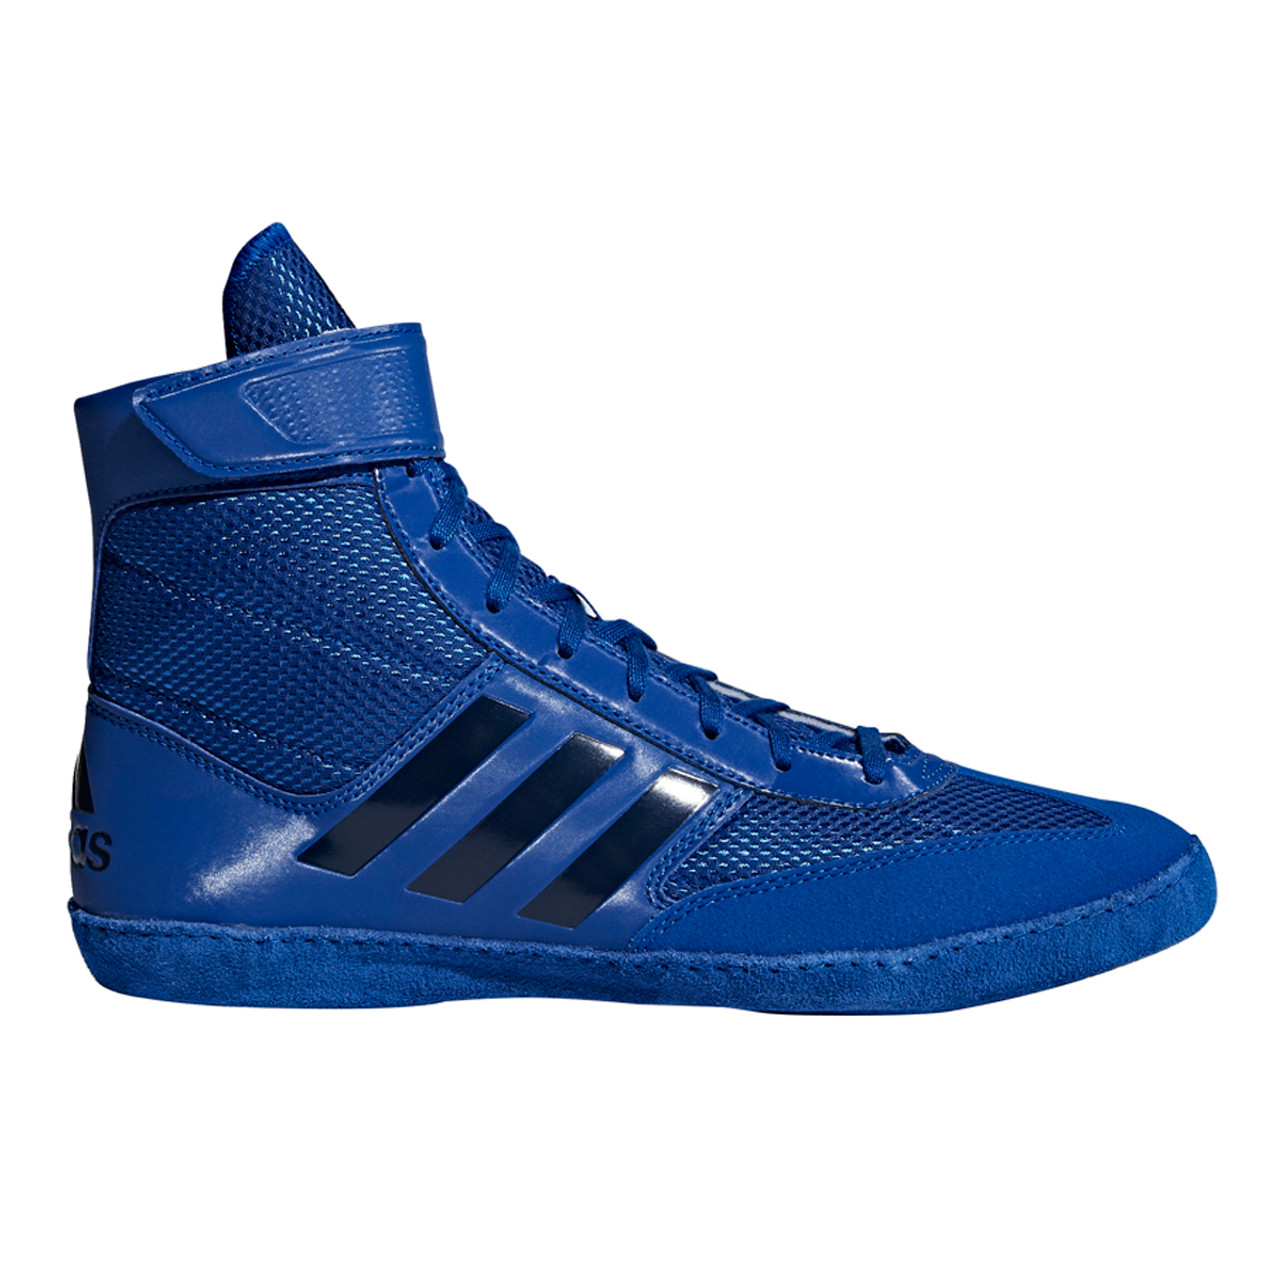 Adidas Combat Speed 5 Men s Wrestling Shoes AC7500 - Royal 0be976201